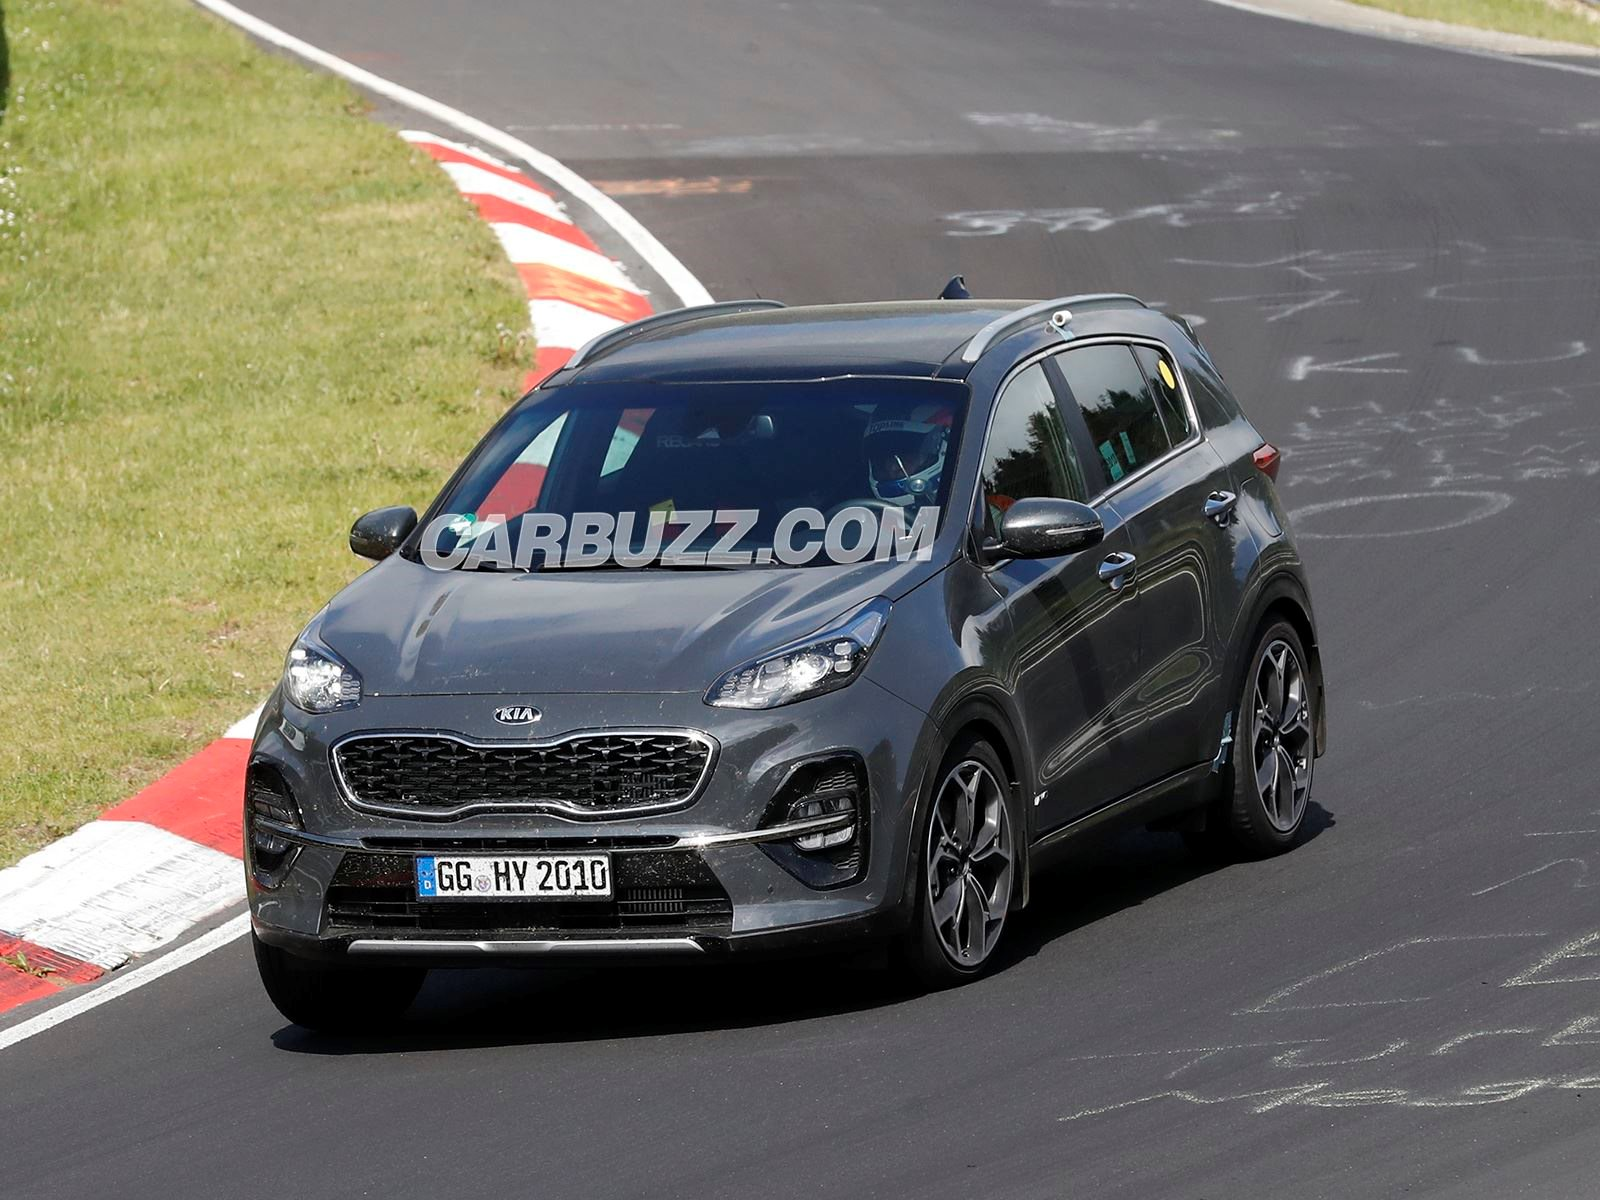 2019 kia sportage facelift caught completely undisguised. Black Bedroom Furniture Sets. Home Design Ideas